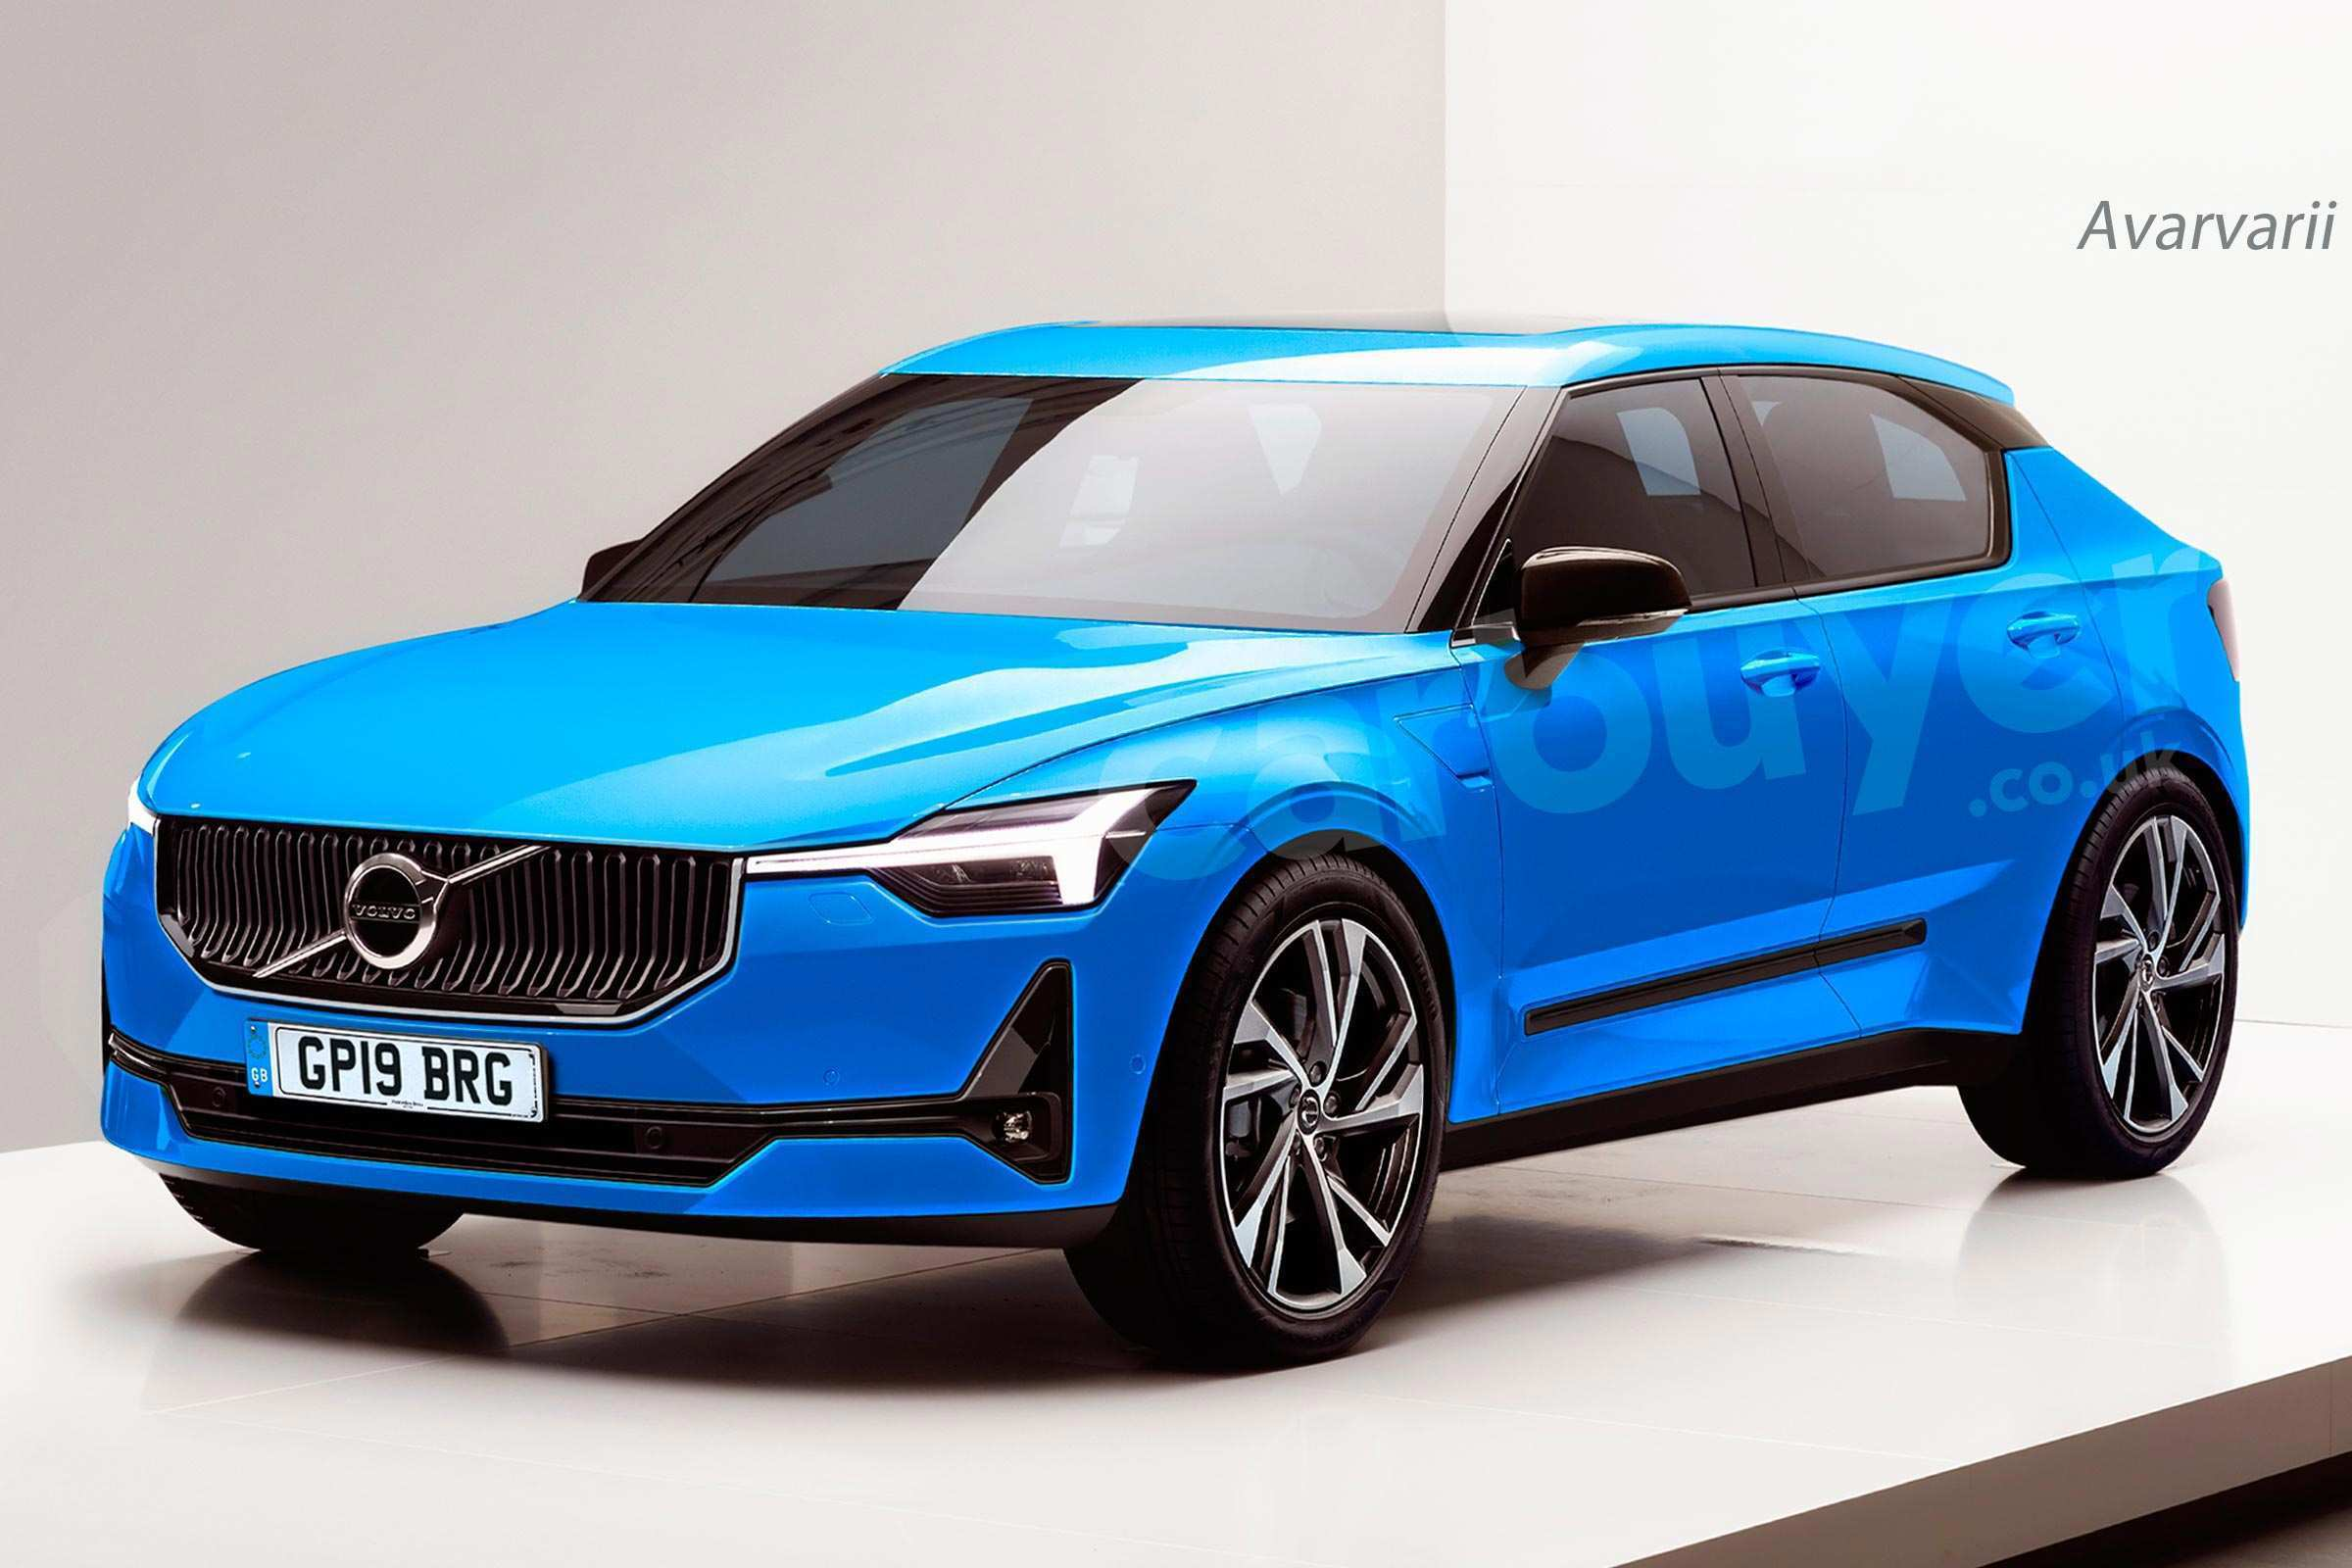 32 New Volvo 2019 Build Review Specs And Release Date Picture for Volvo 2019 Build Review Specs And Release Date